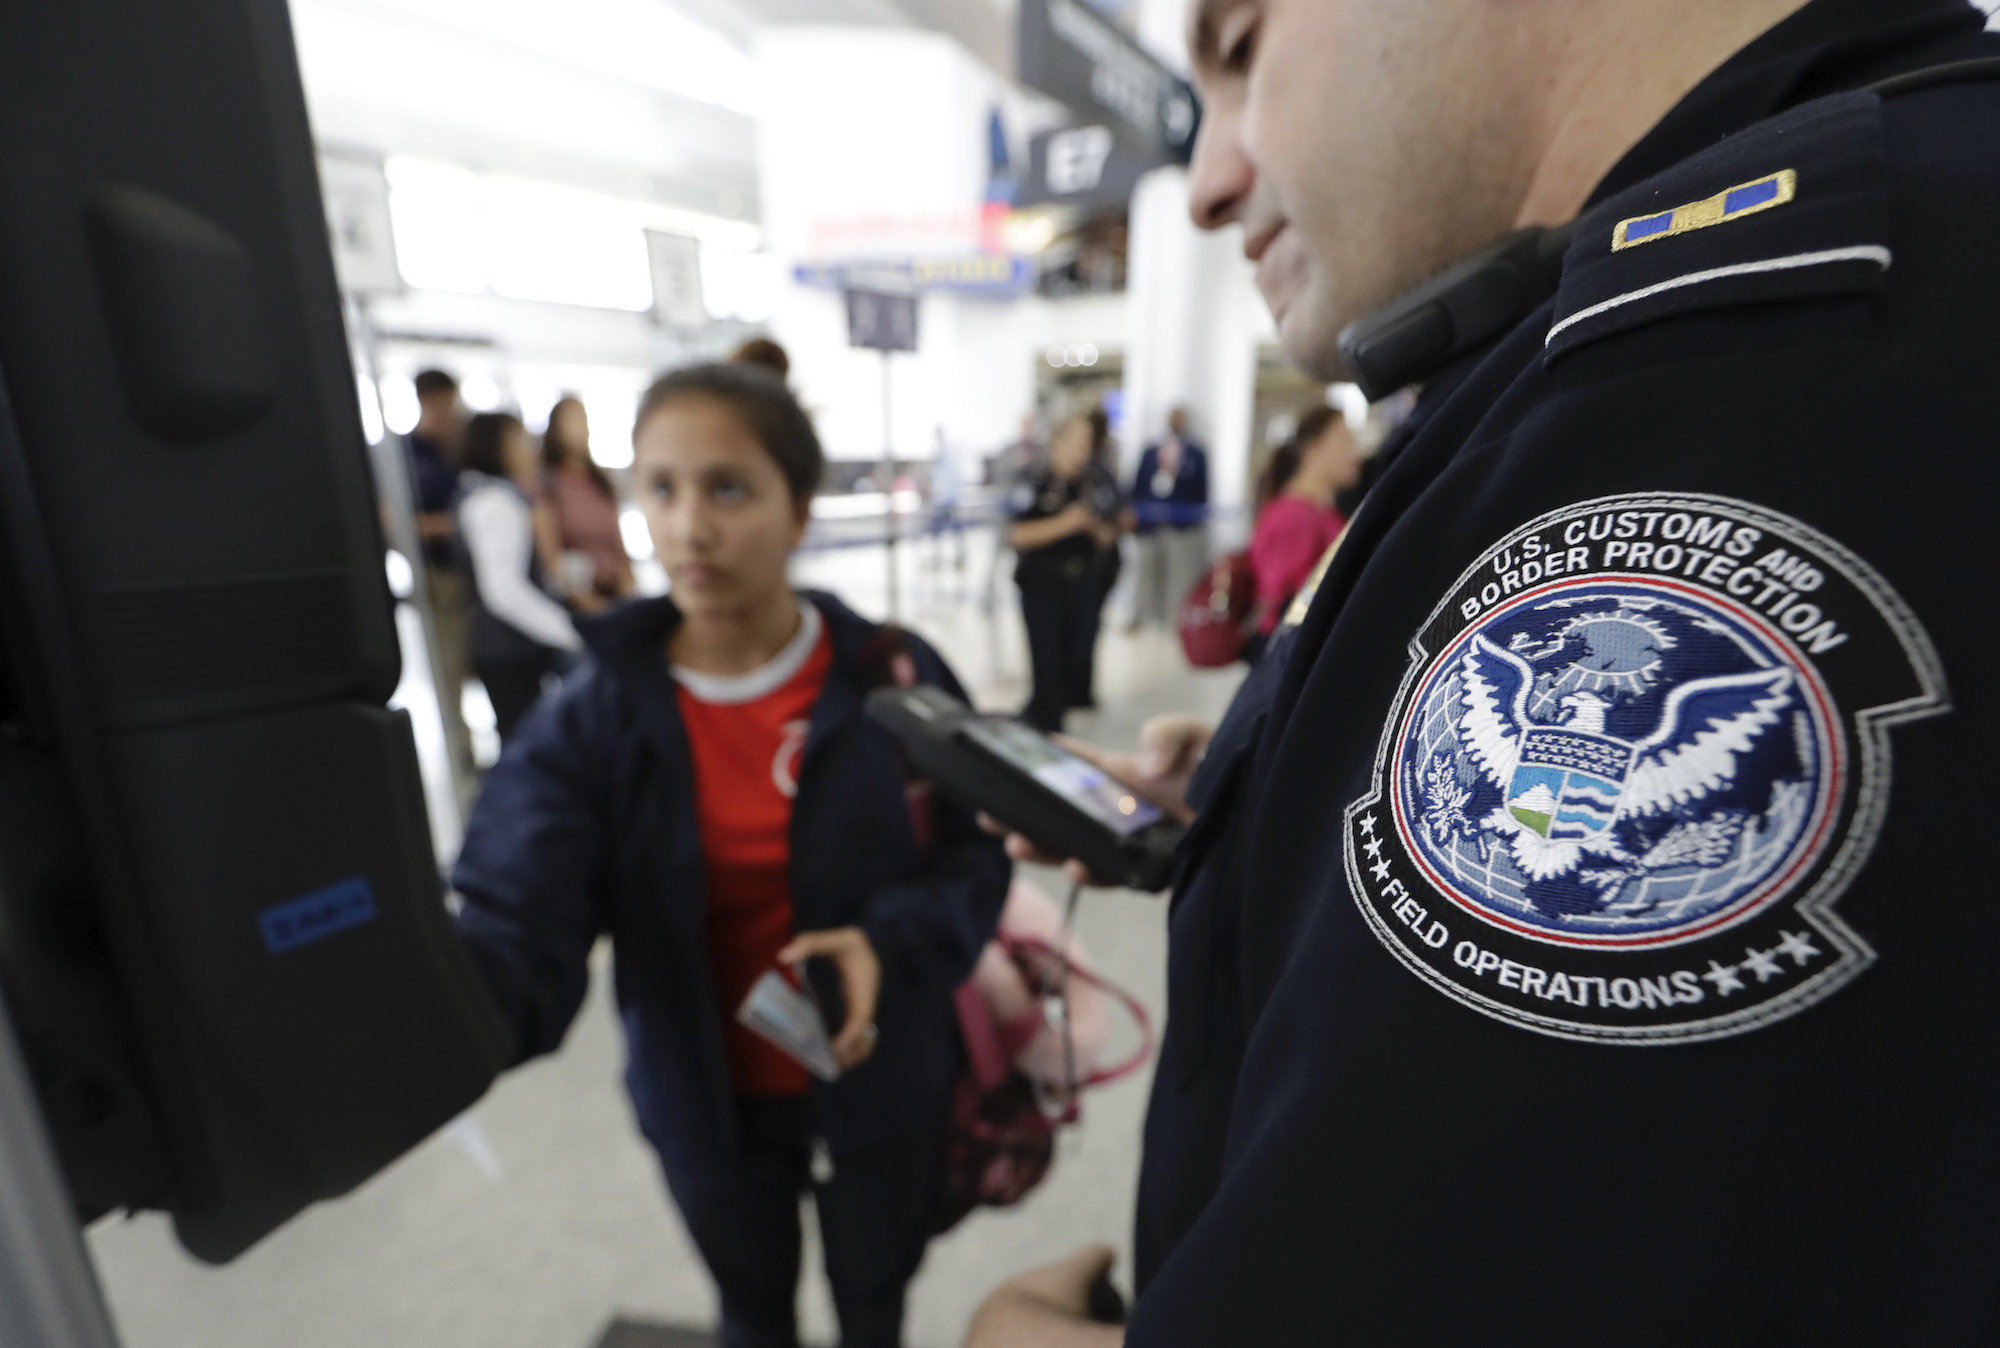 A U.S. Customs and Border Protection officer helps a passenger navigate a facial recognition kiosk at the airport.